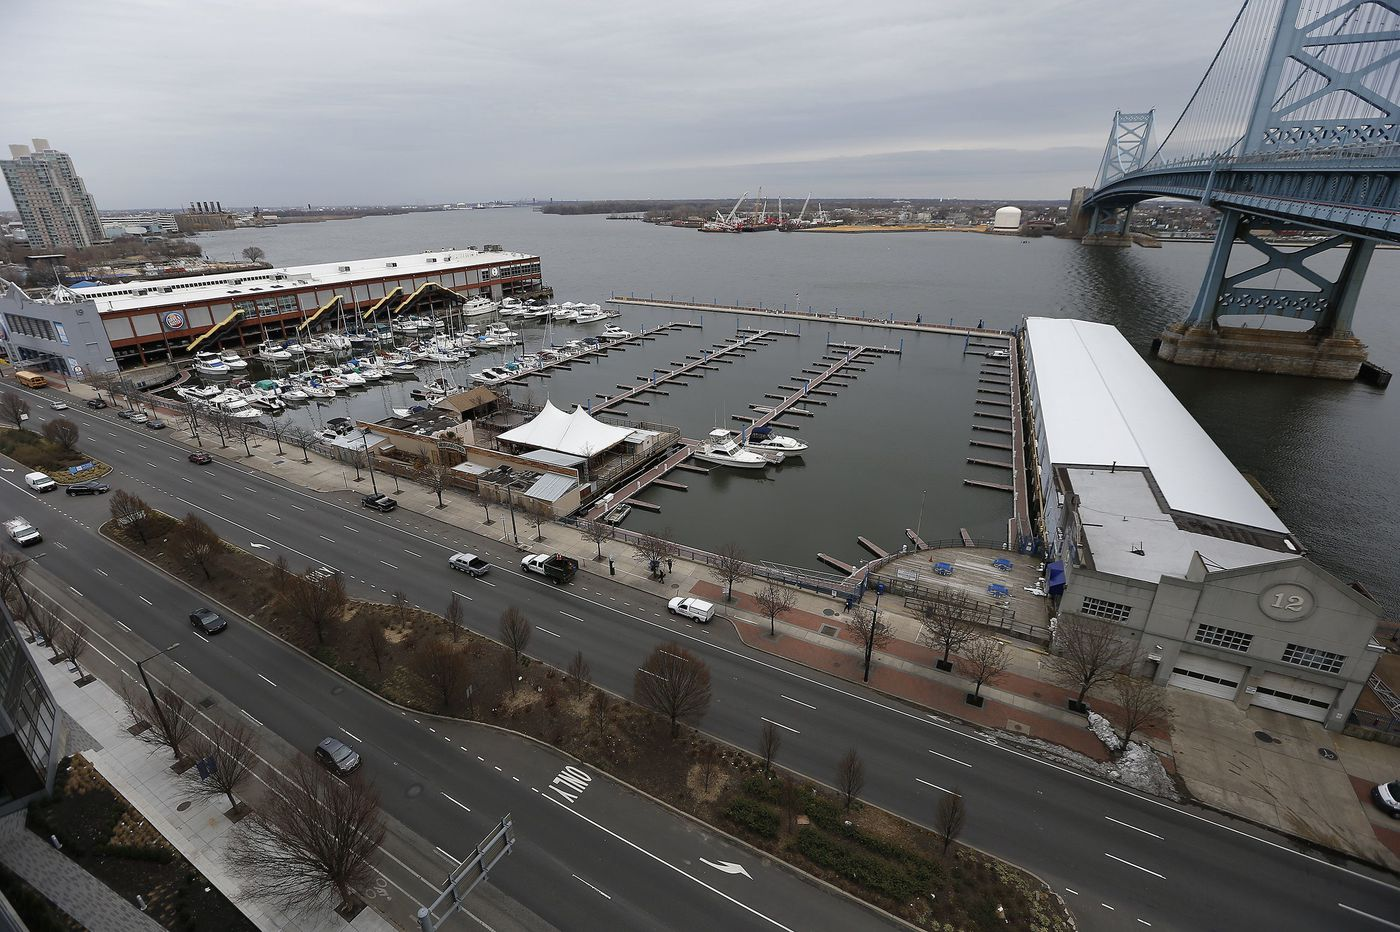 Durst closes marina to advance Delaware River development plans, leaving boaters high and dry